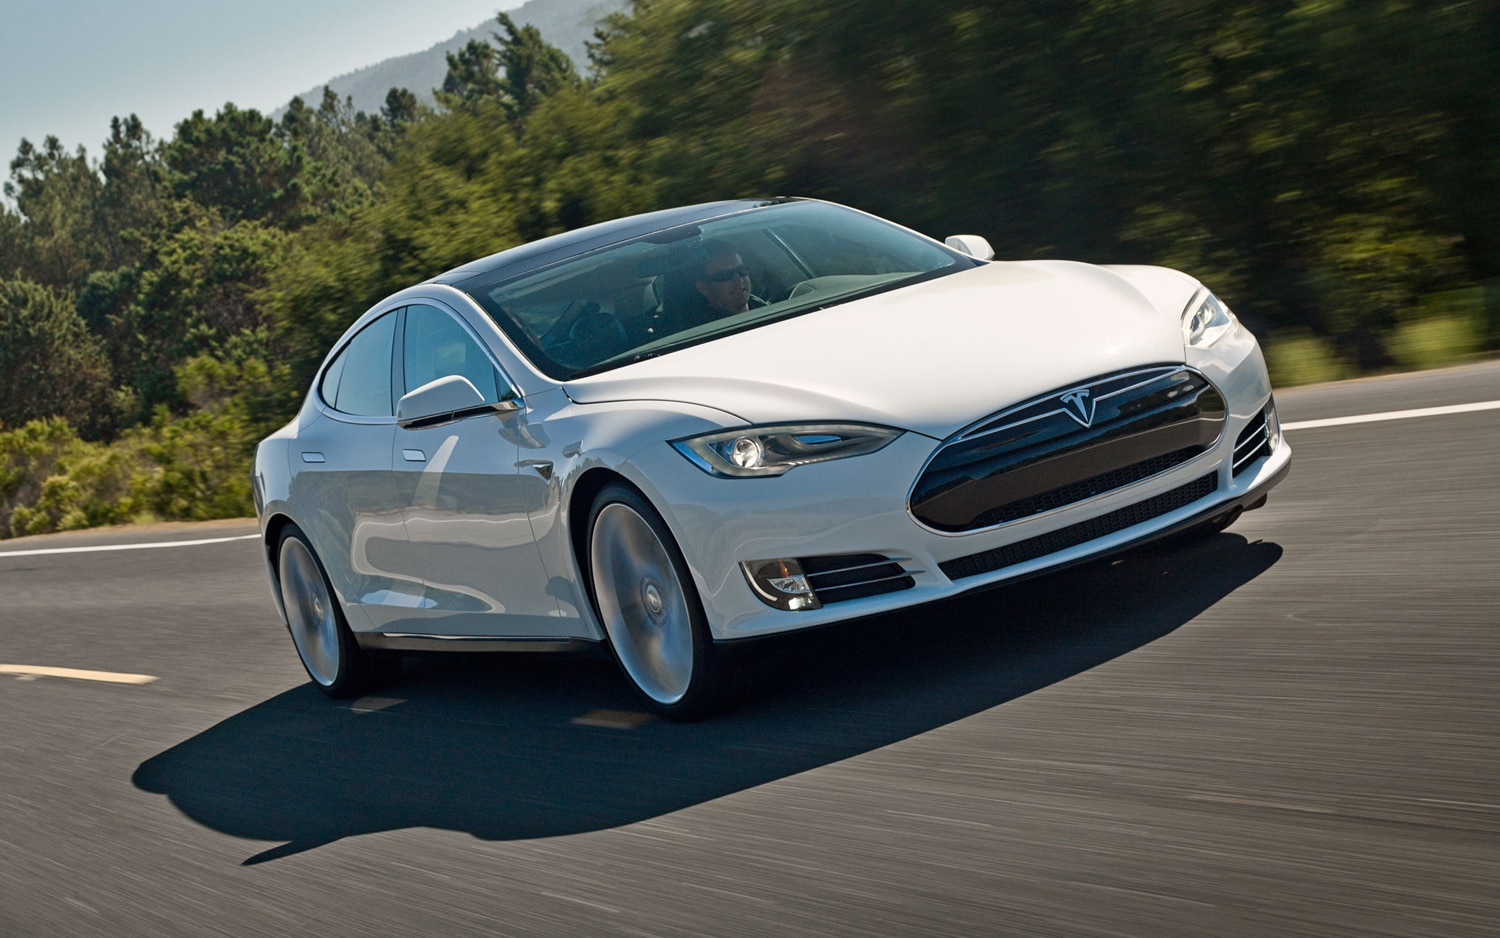 2013 Telsa Model S Front End In Motion1